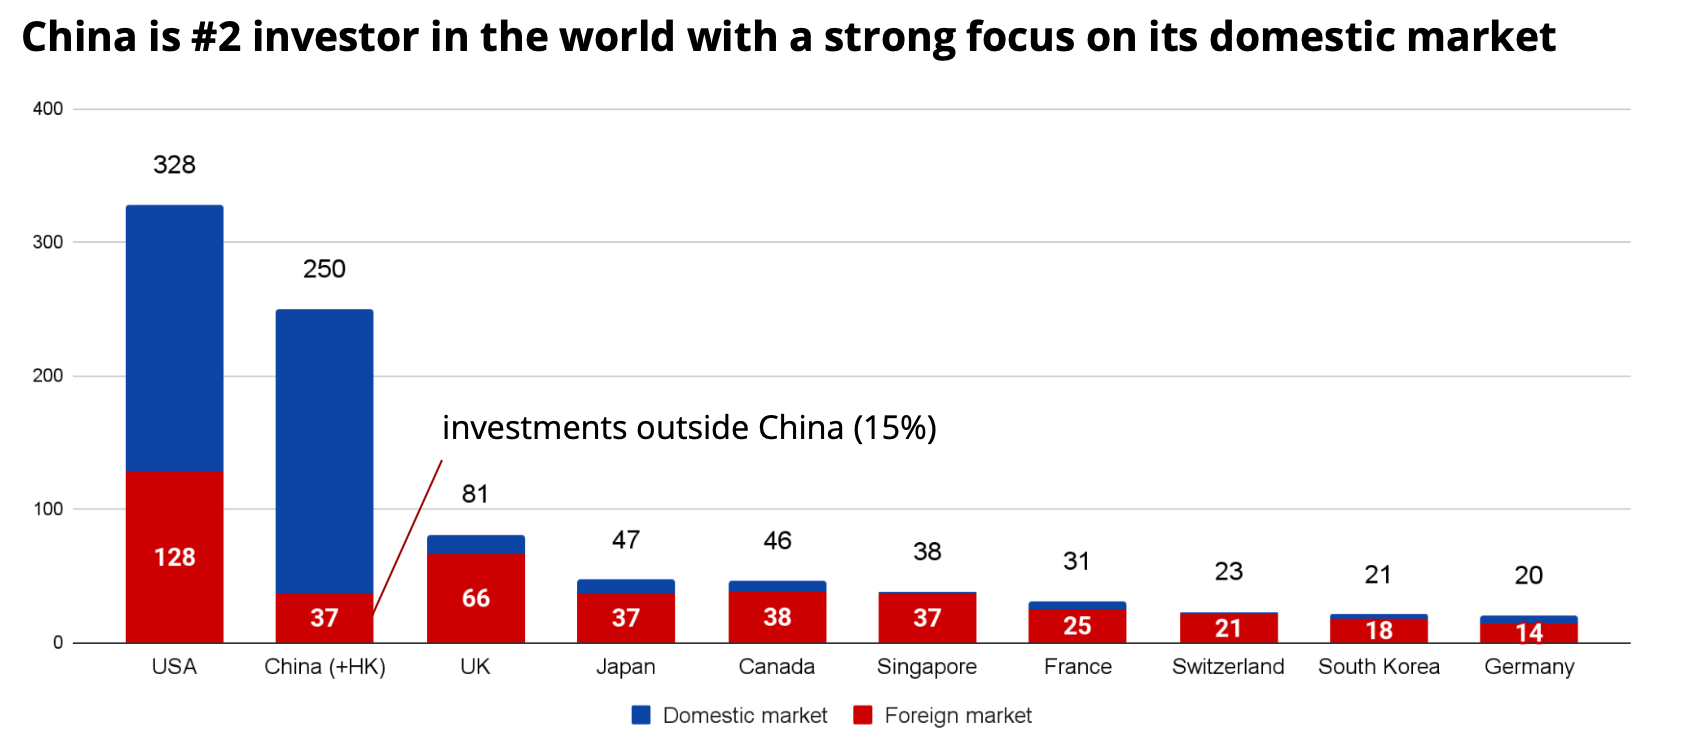 Comparison of investment amount from different countries in 2020, $bn. Source: Crunchbase, ITjuzi